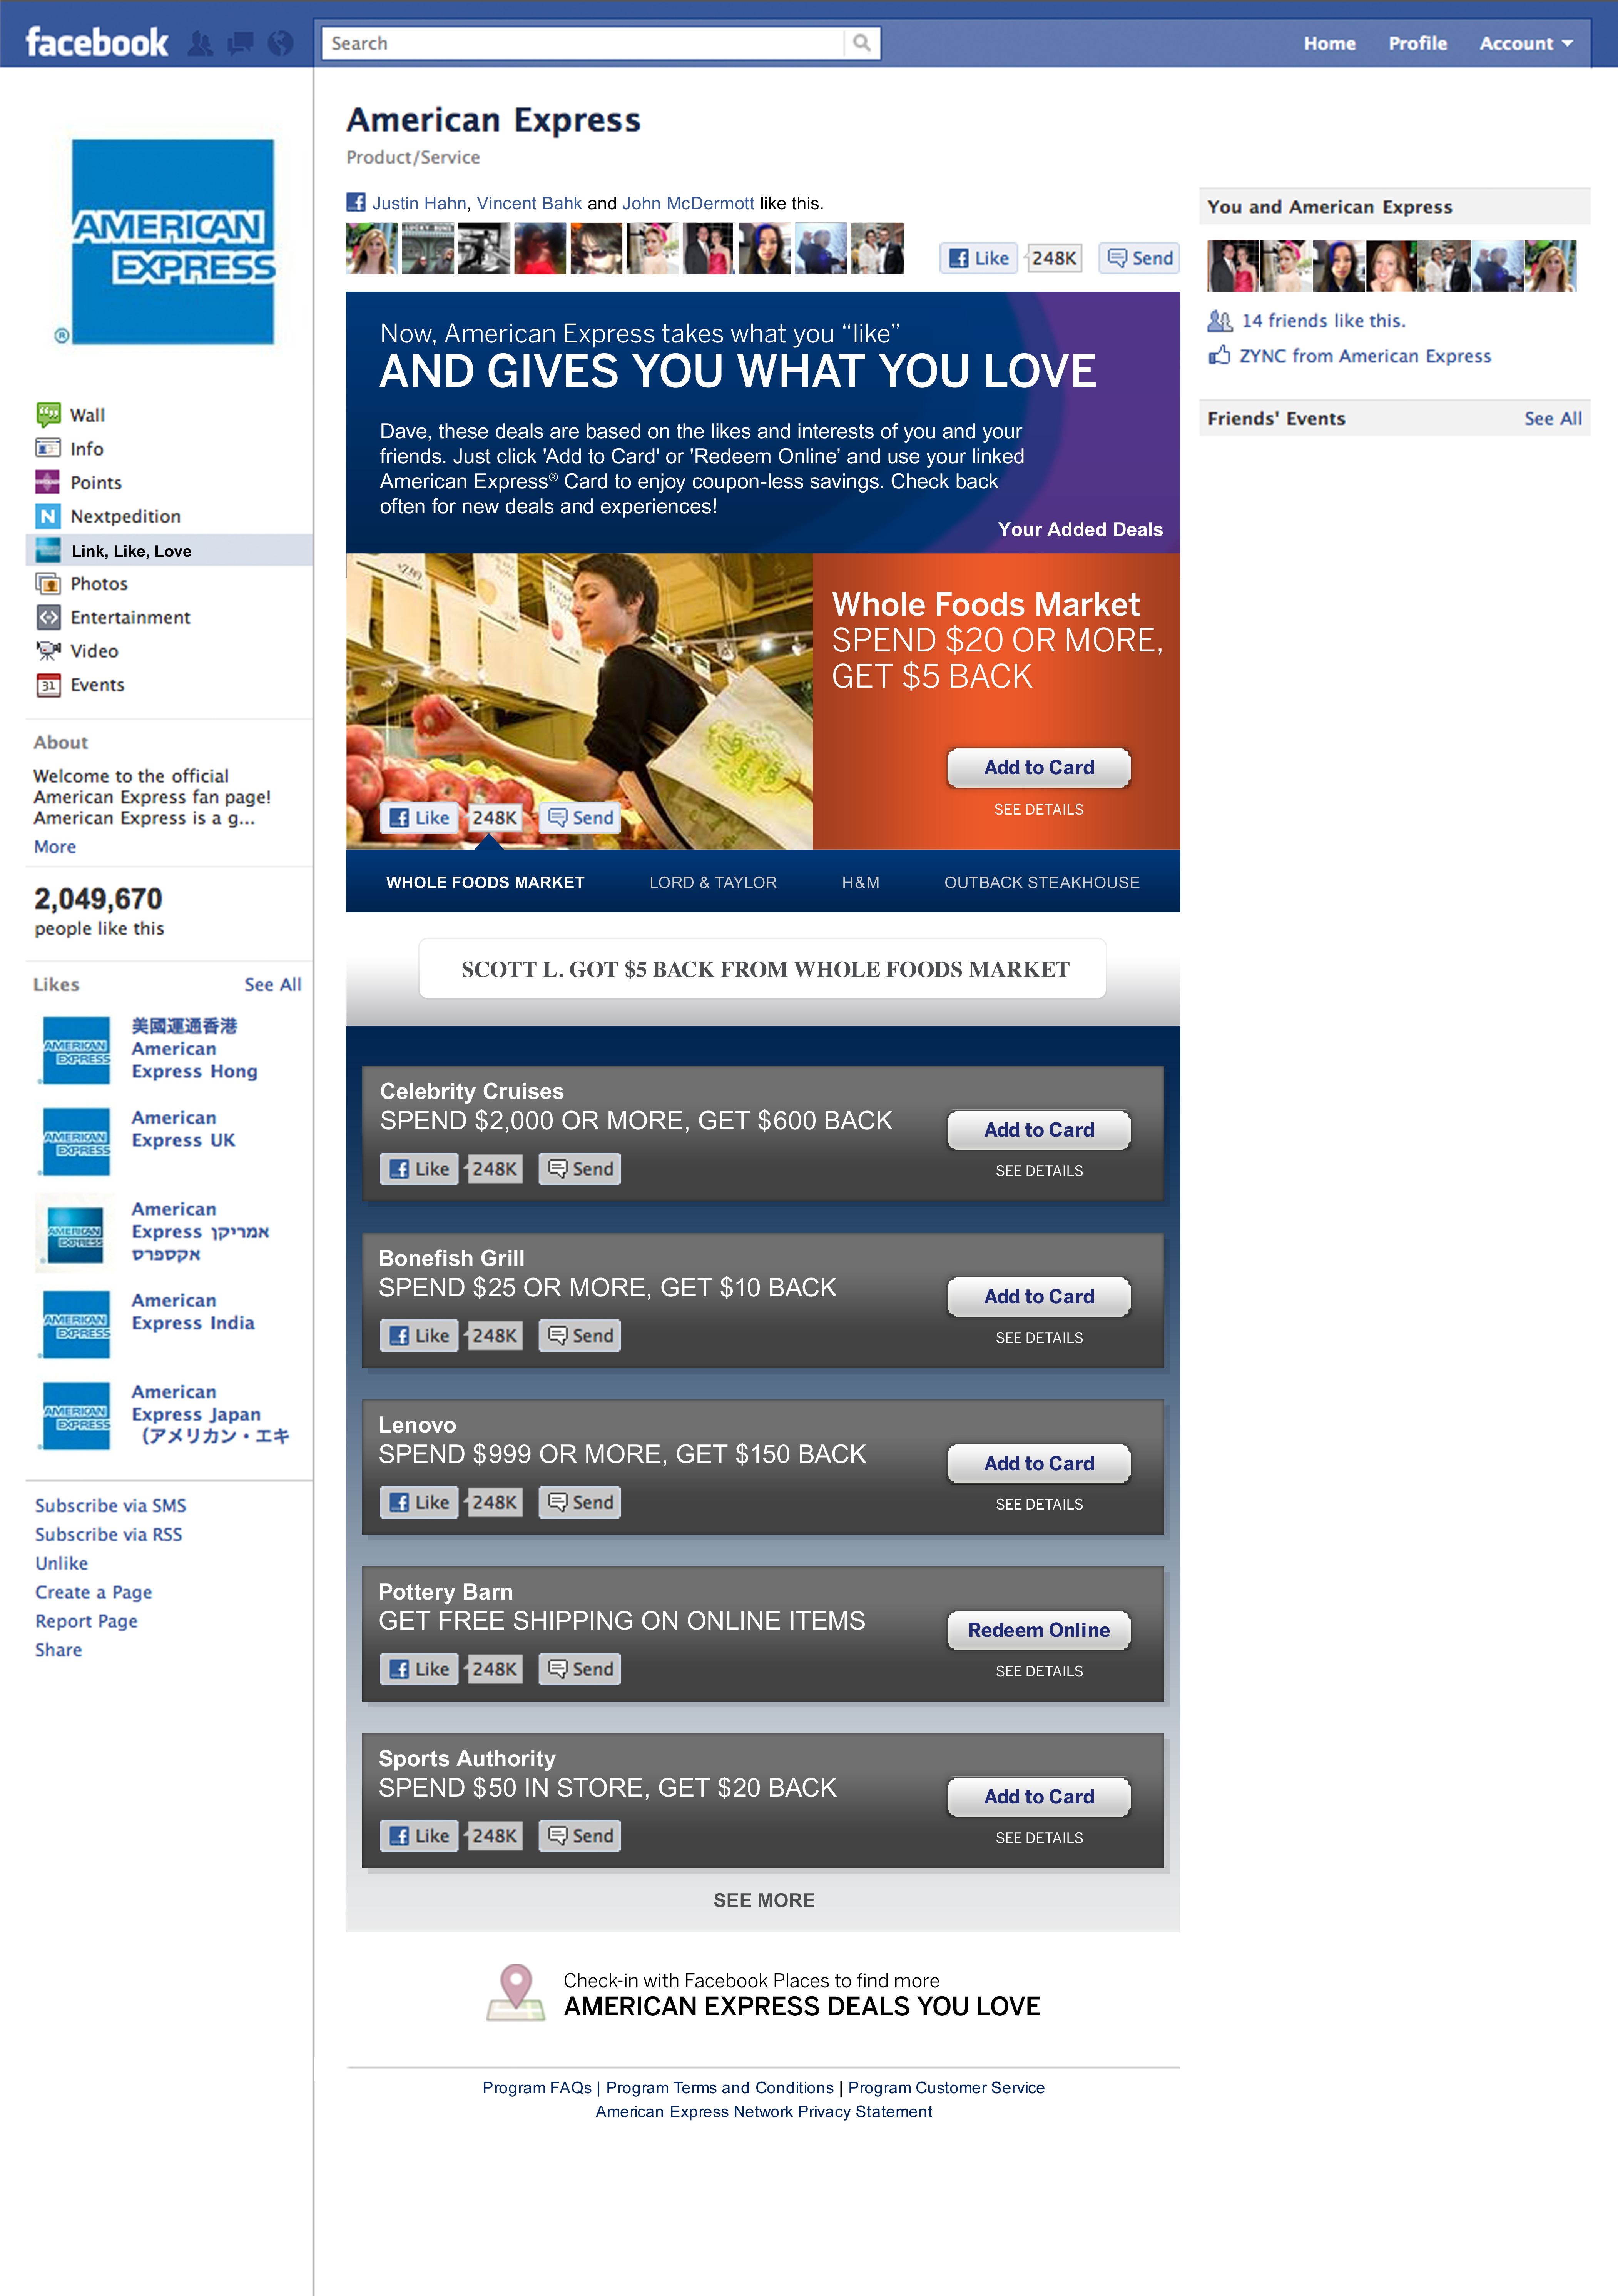 American Express Deals >> American Express Launches Link Like Love On Facebook